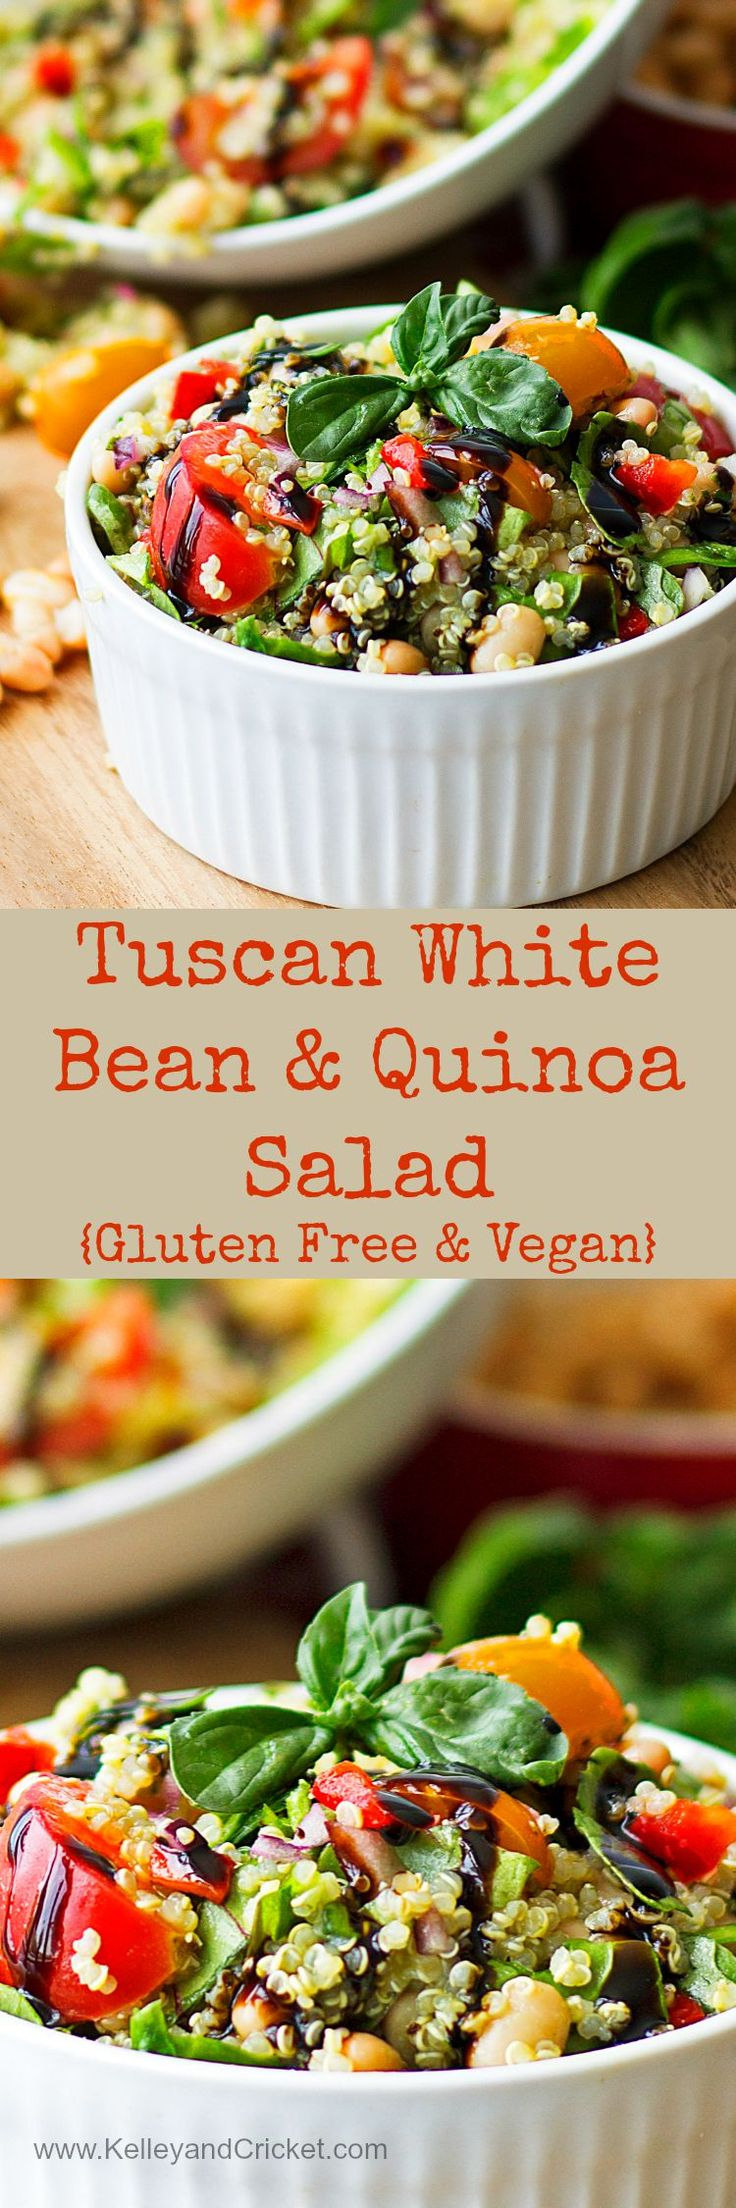 Fresh Italian flavors highlight this healthy and protein packed white bean and quinoa salad. Gluten free and vegan!